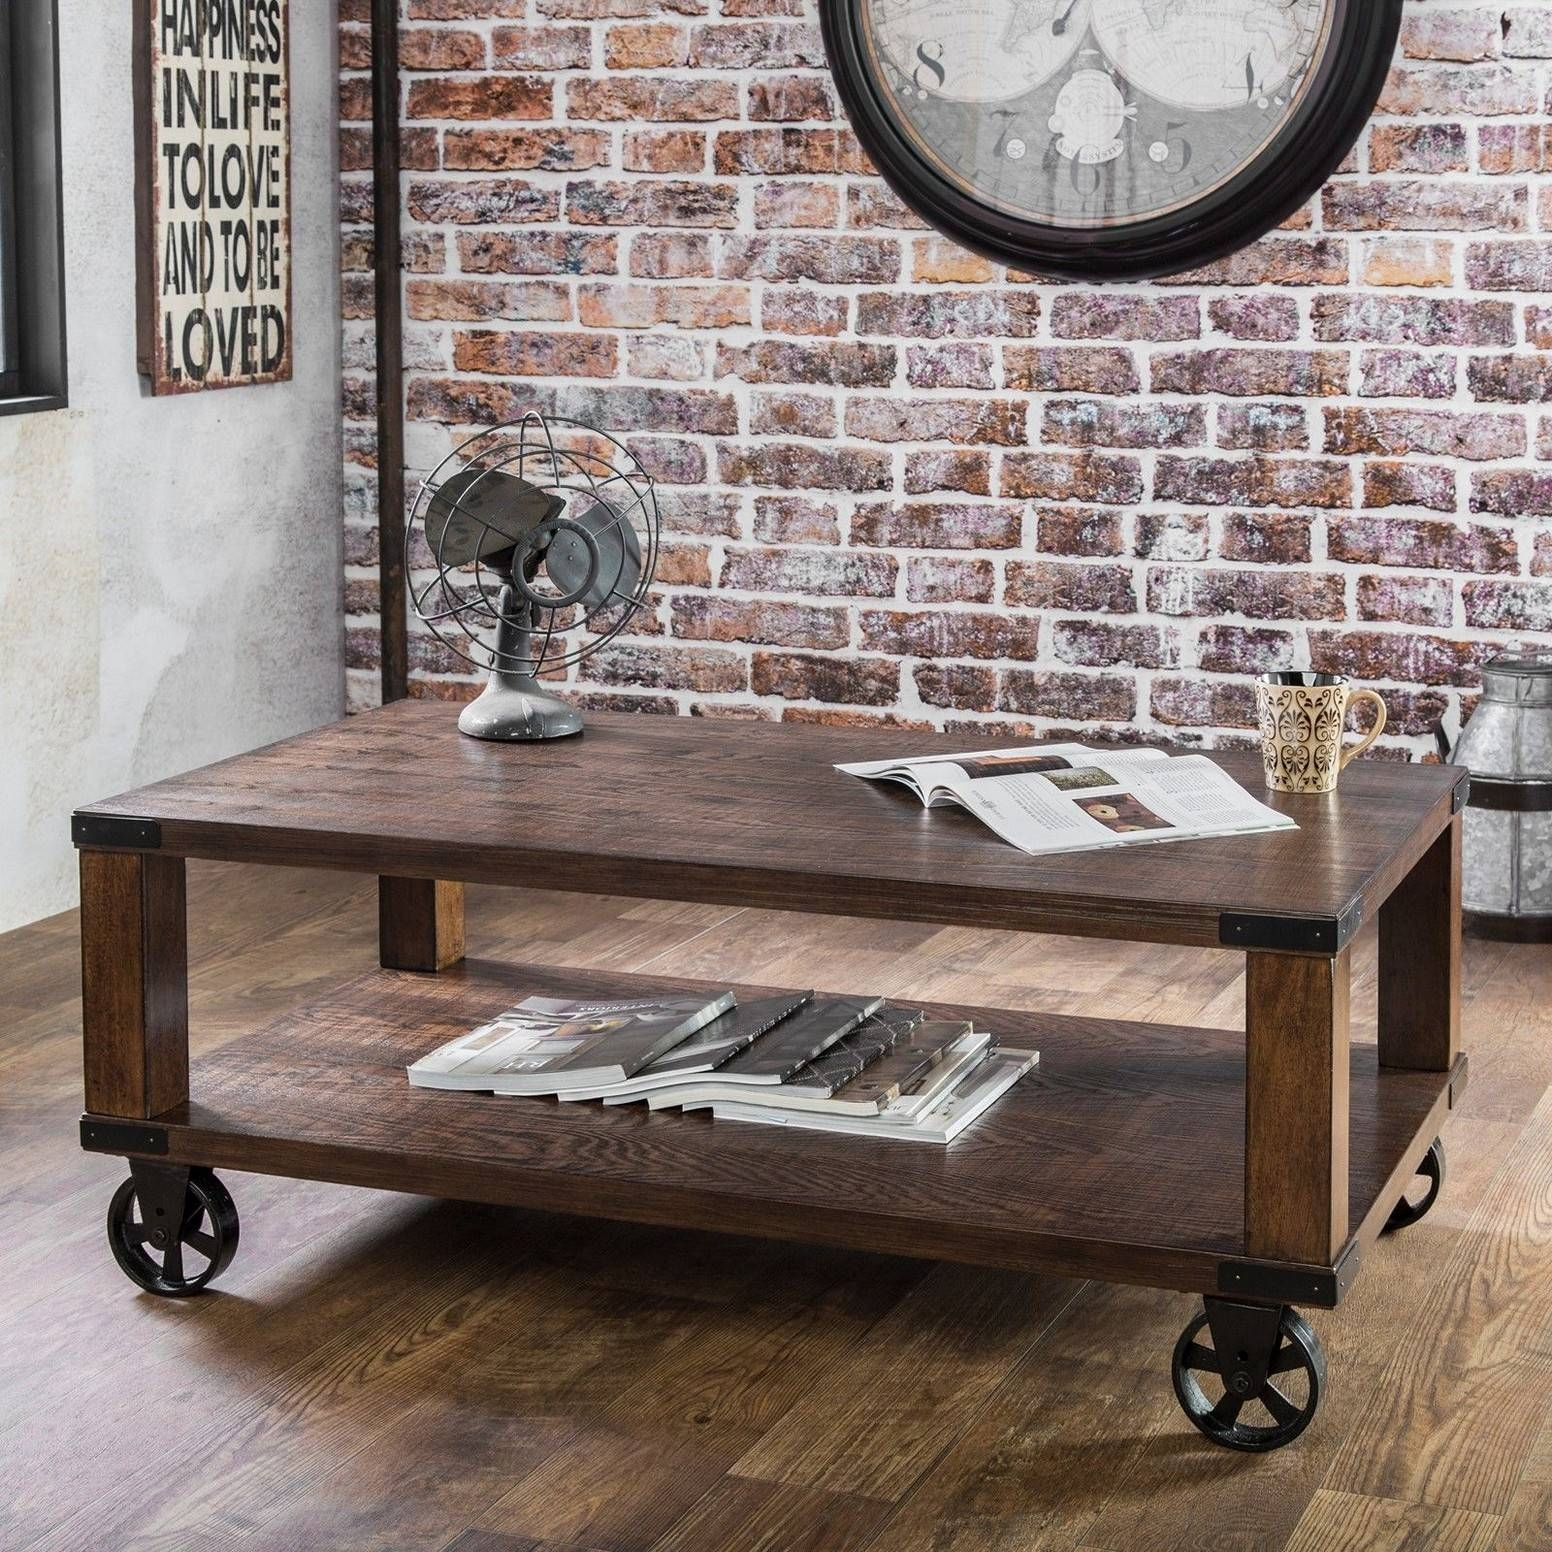 Coffee Table With Wheels And Storage | Coffee Tables Decoration pertaining to Wheels Coffee Tables (Image 3 of 30)